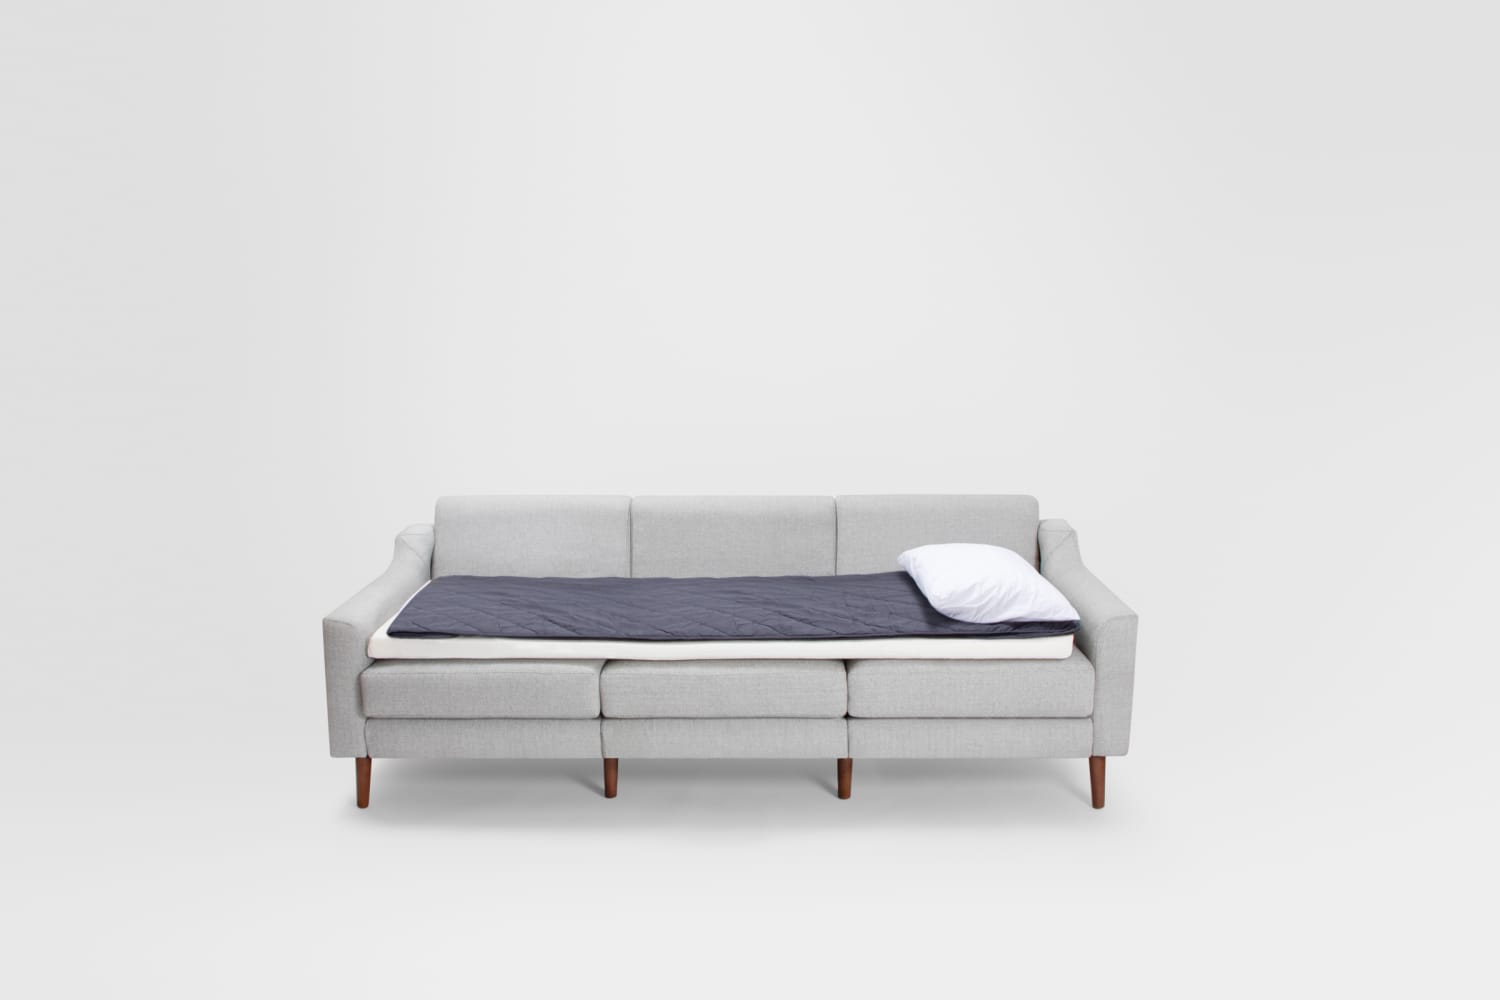 Burrow's New Sleep Kit Turns Any Sofa Into a Luxury Guest Bed